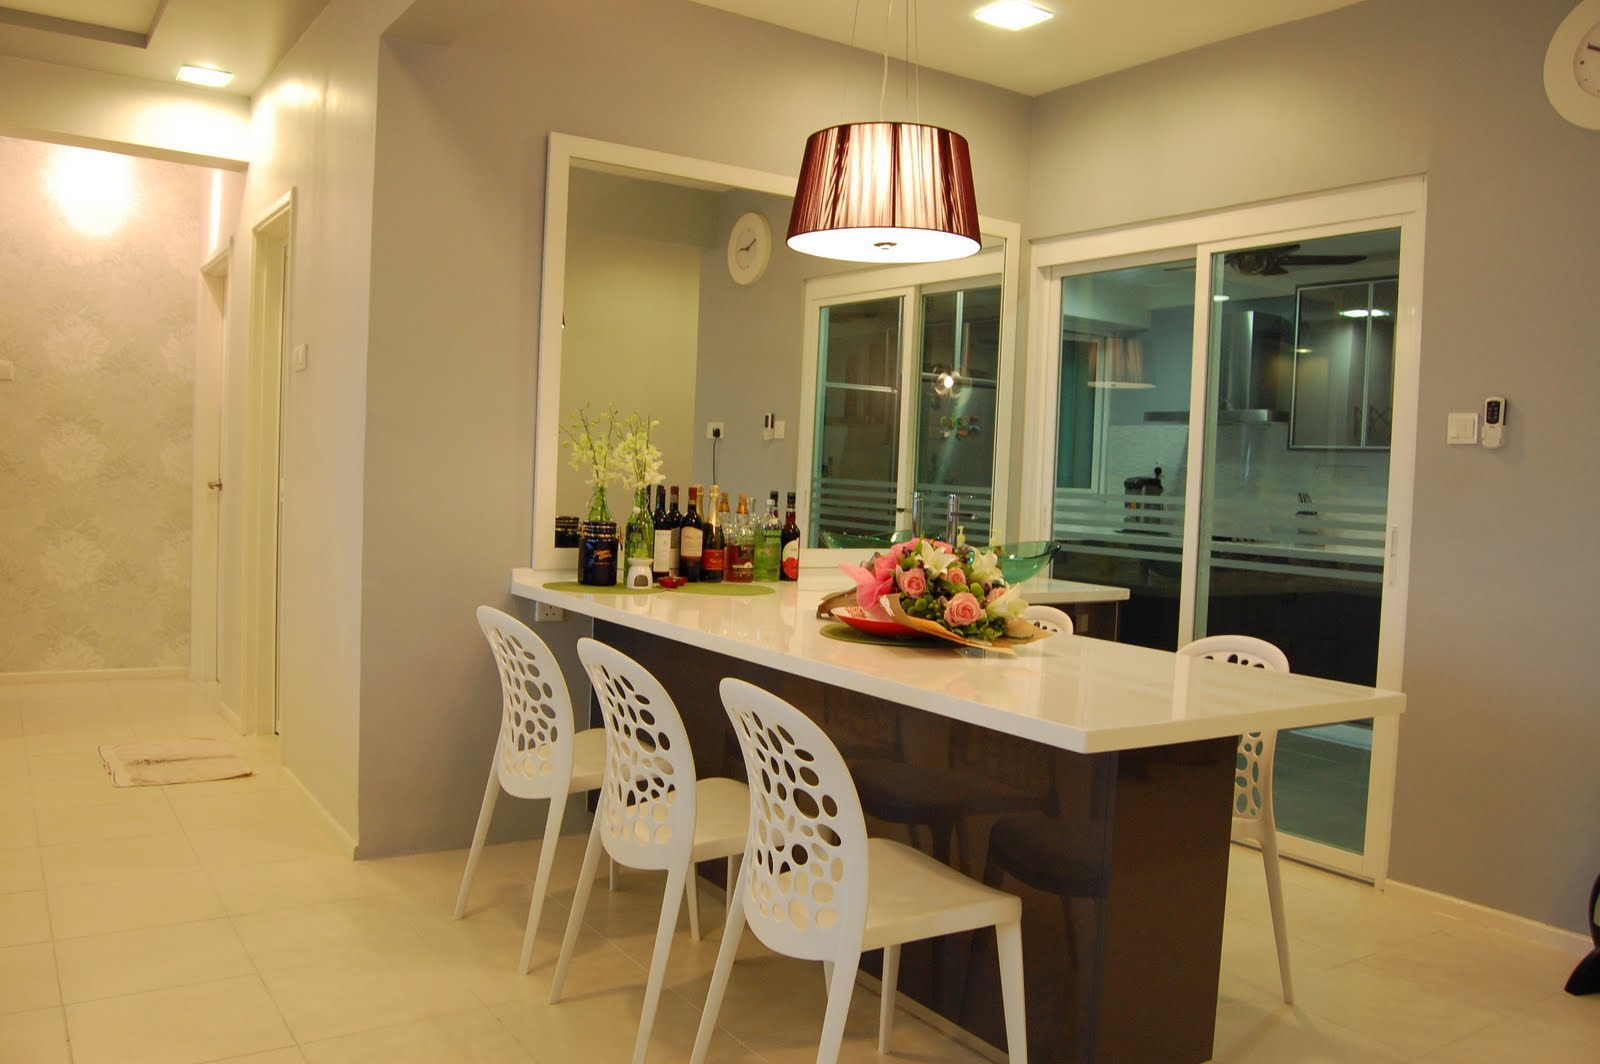 Kitchen design in penang malaysia image joy studio for Kitchen decoration malaysia